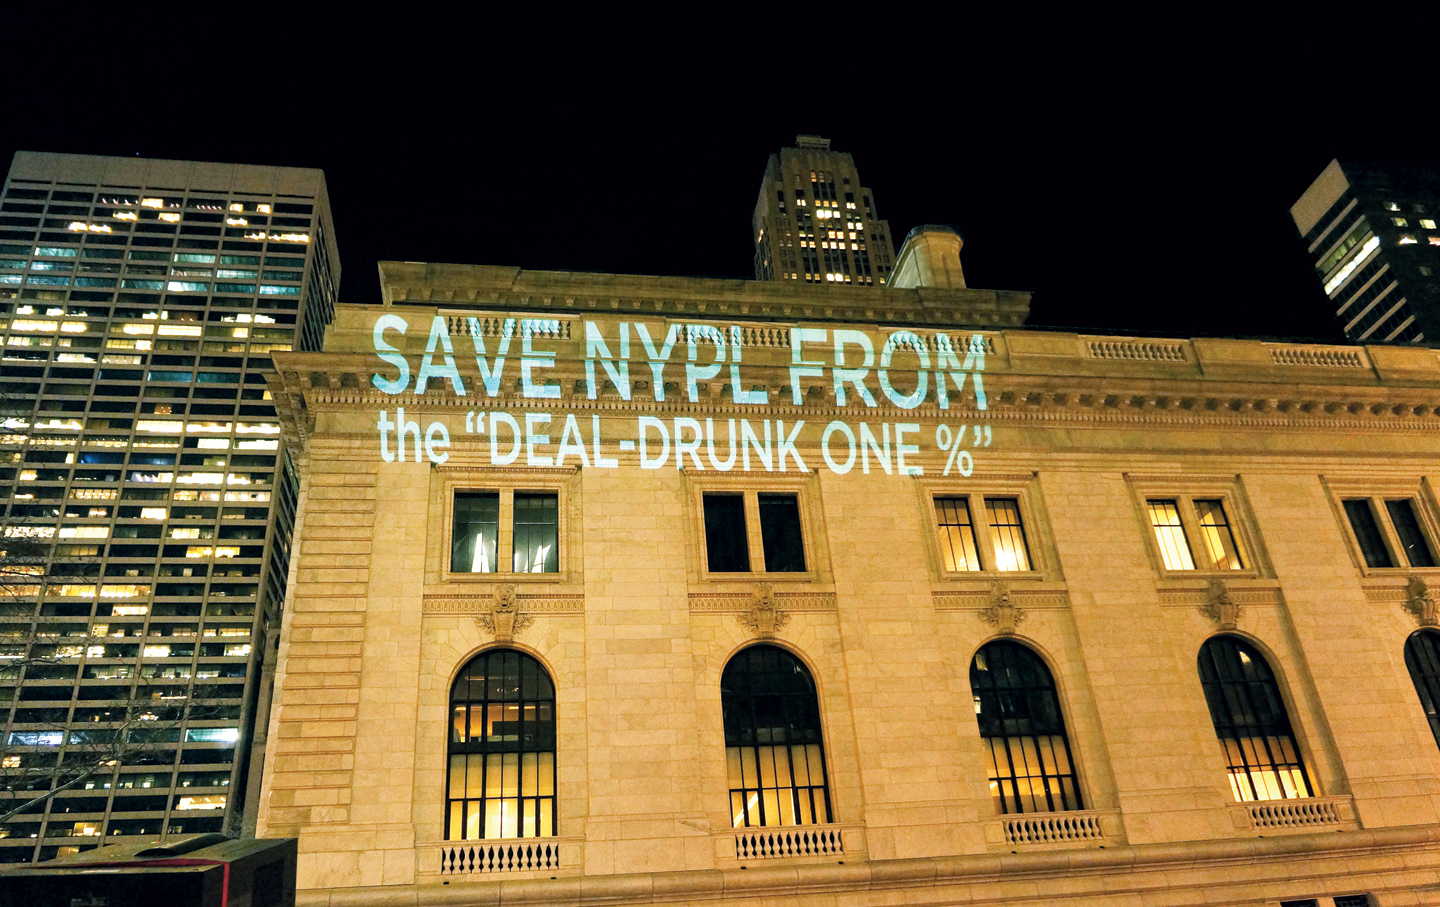 Protest at the New York Public Library, March 11, 2014.